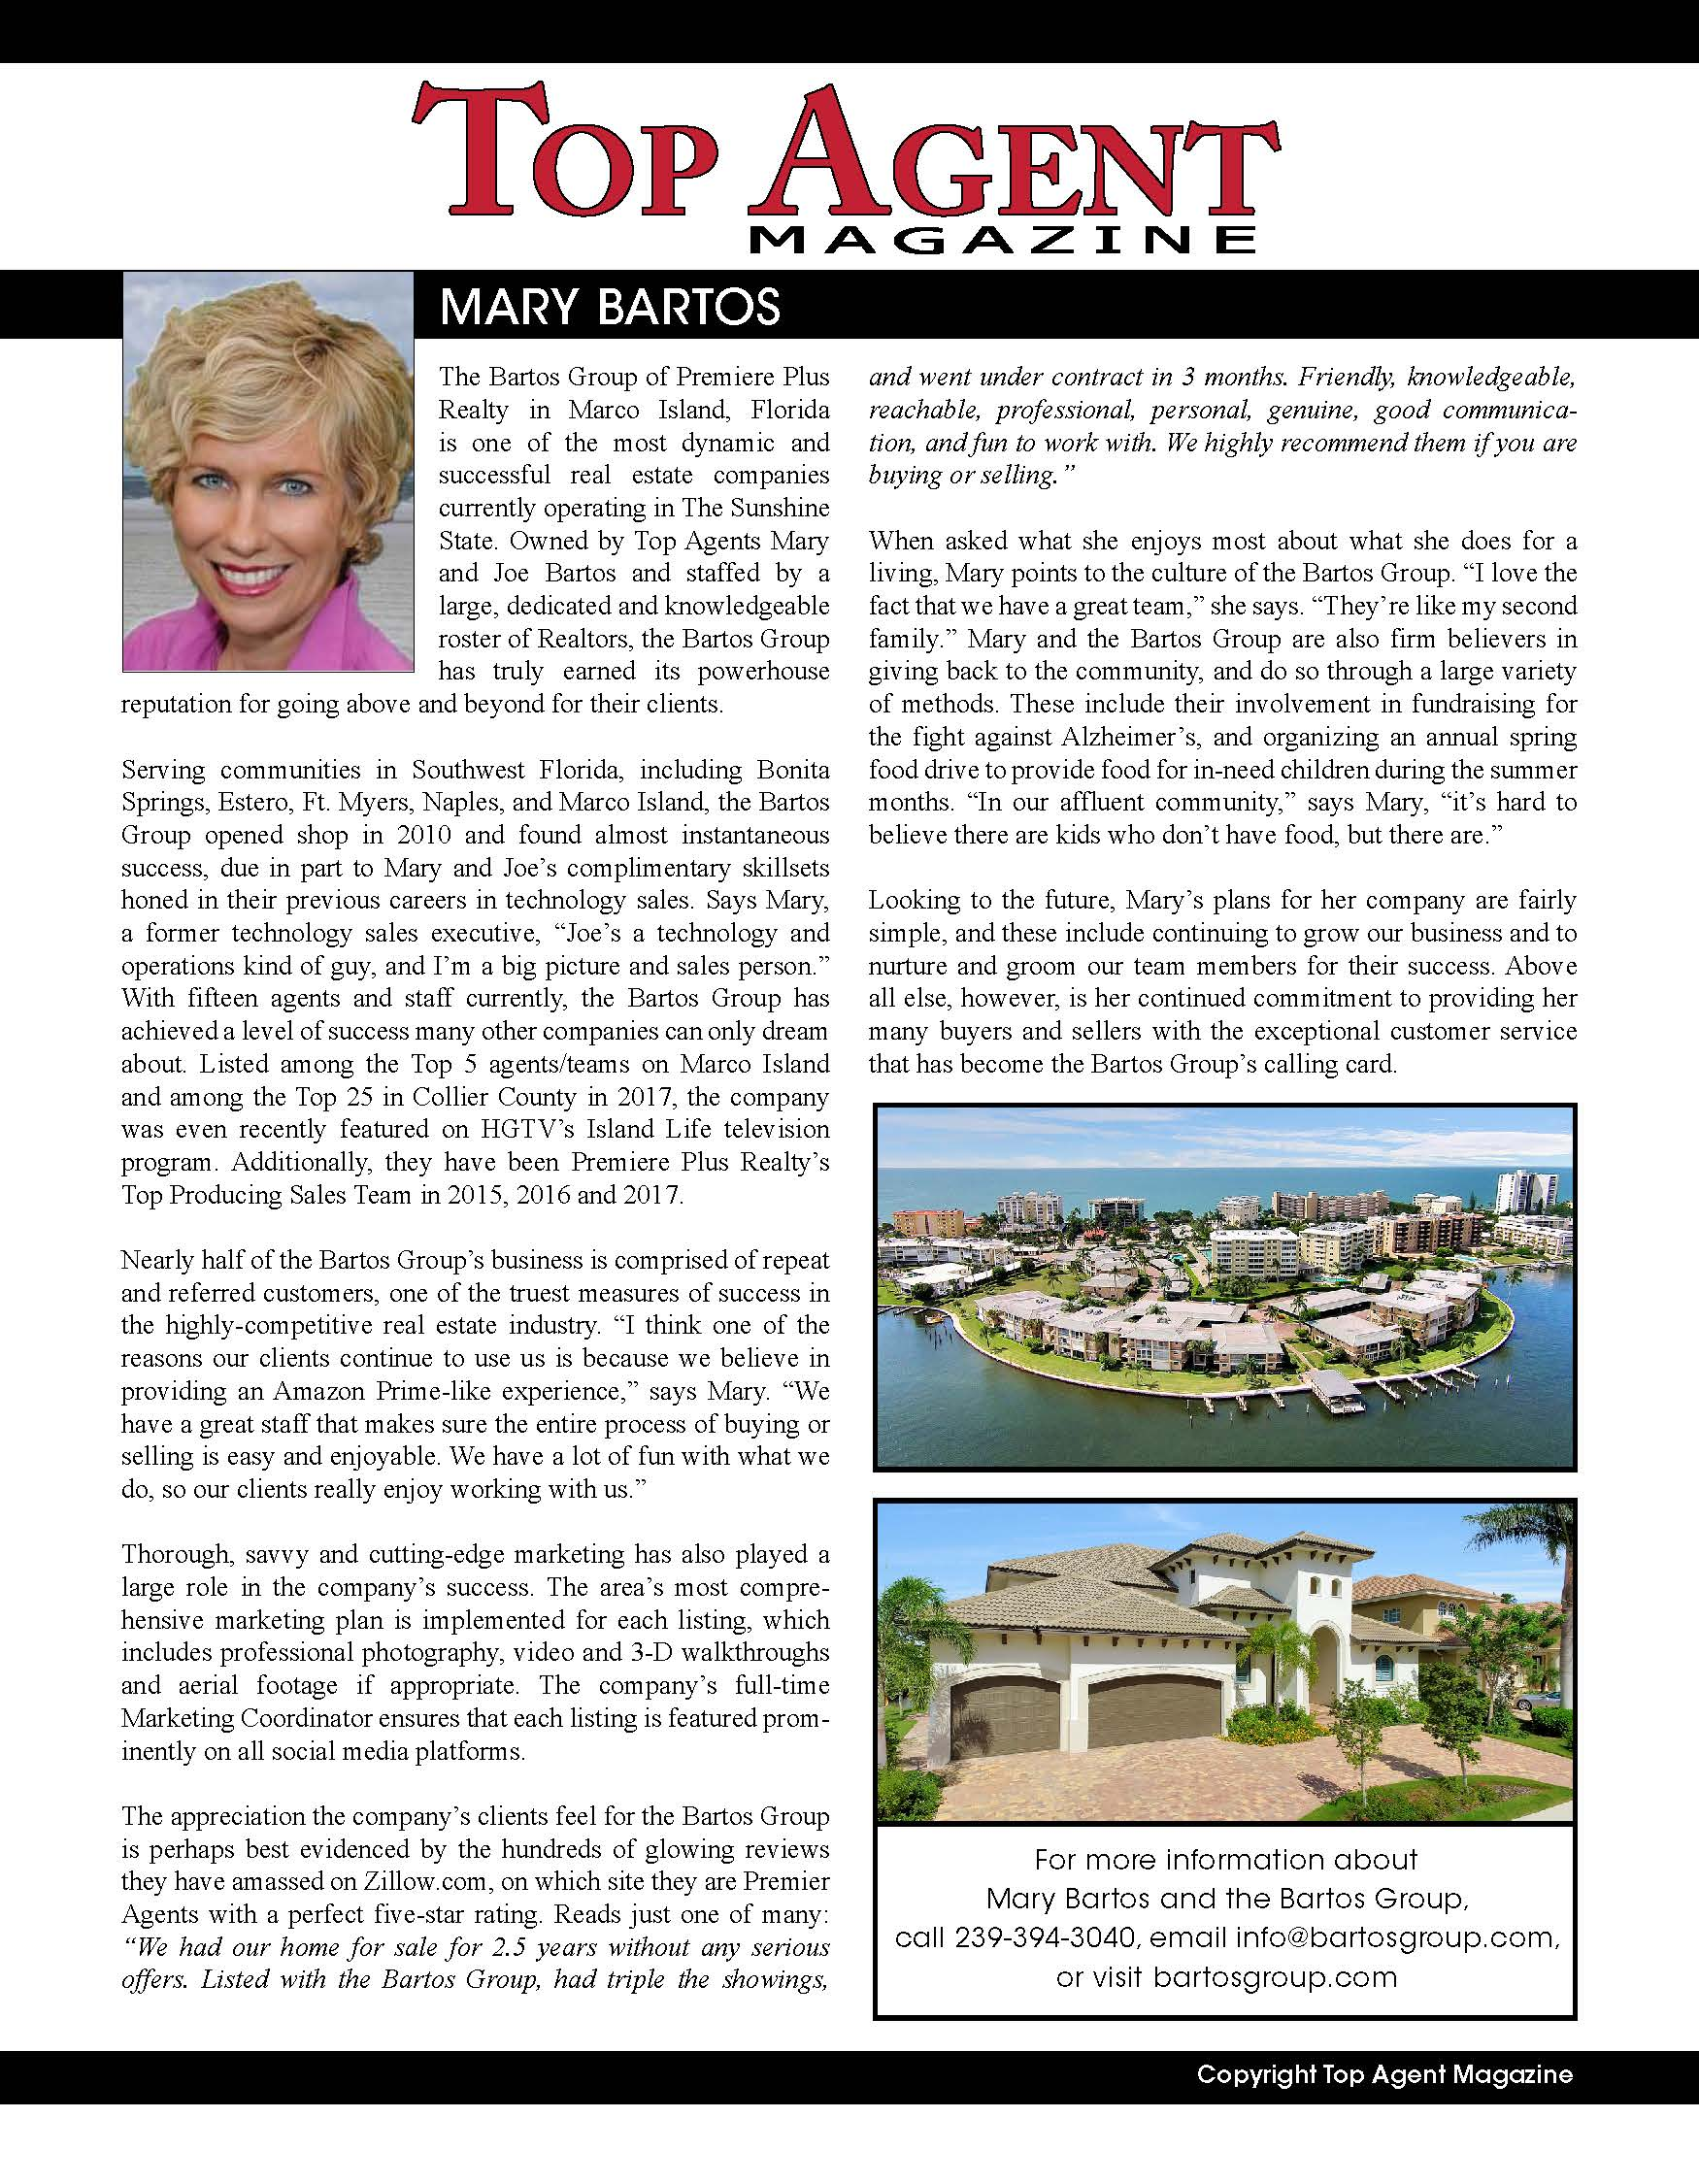 Top Agent Mary Bartos